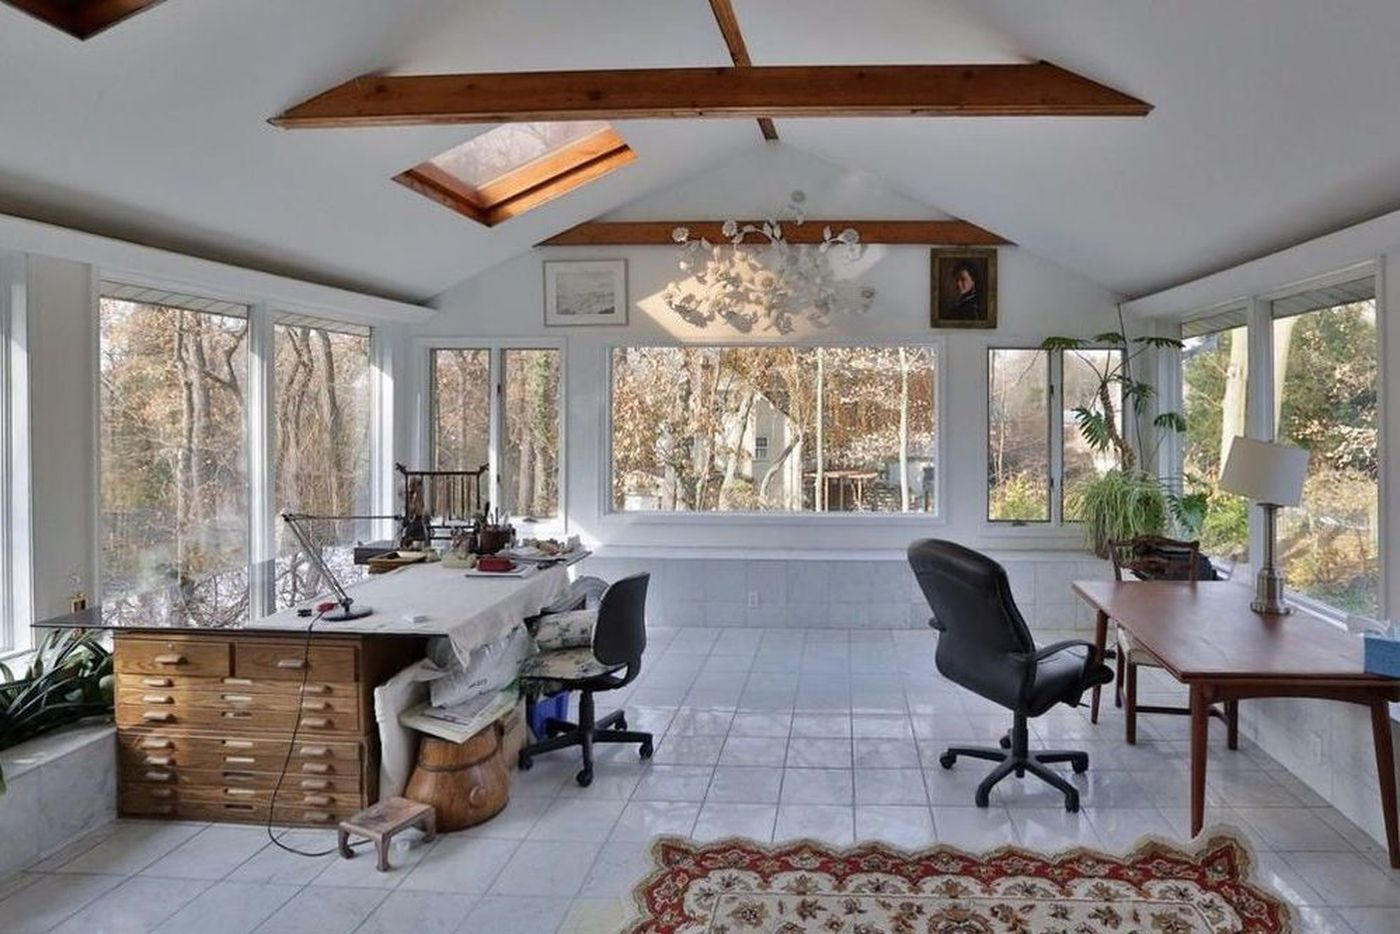 For sale in Philly: A bright Mount Airy home with private studio